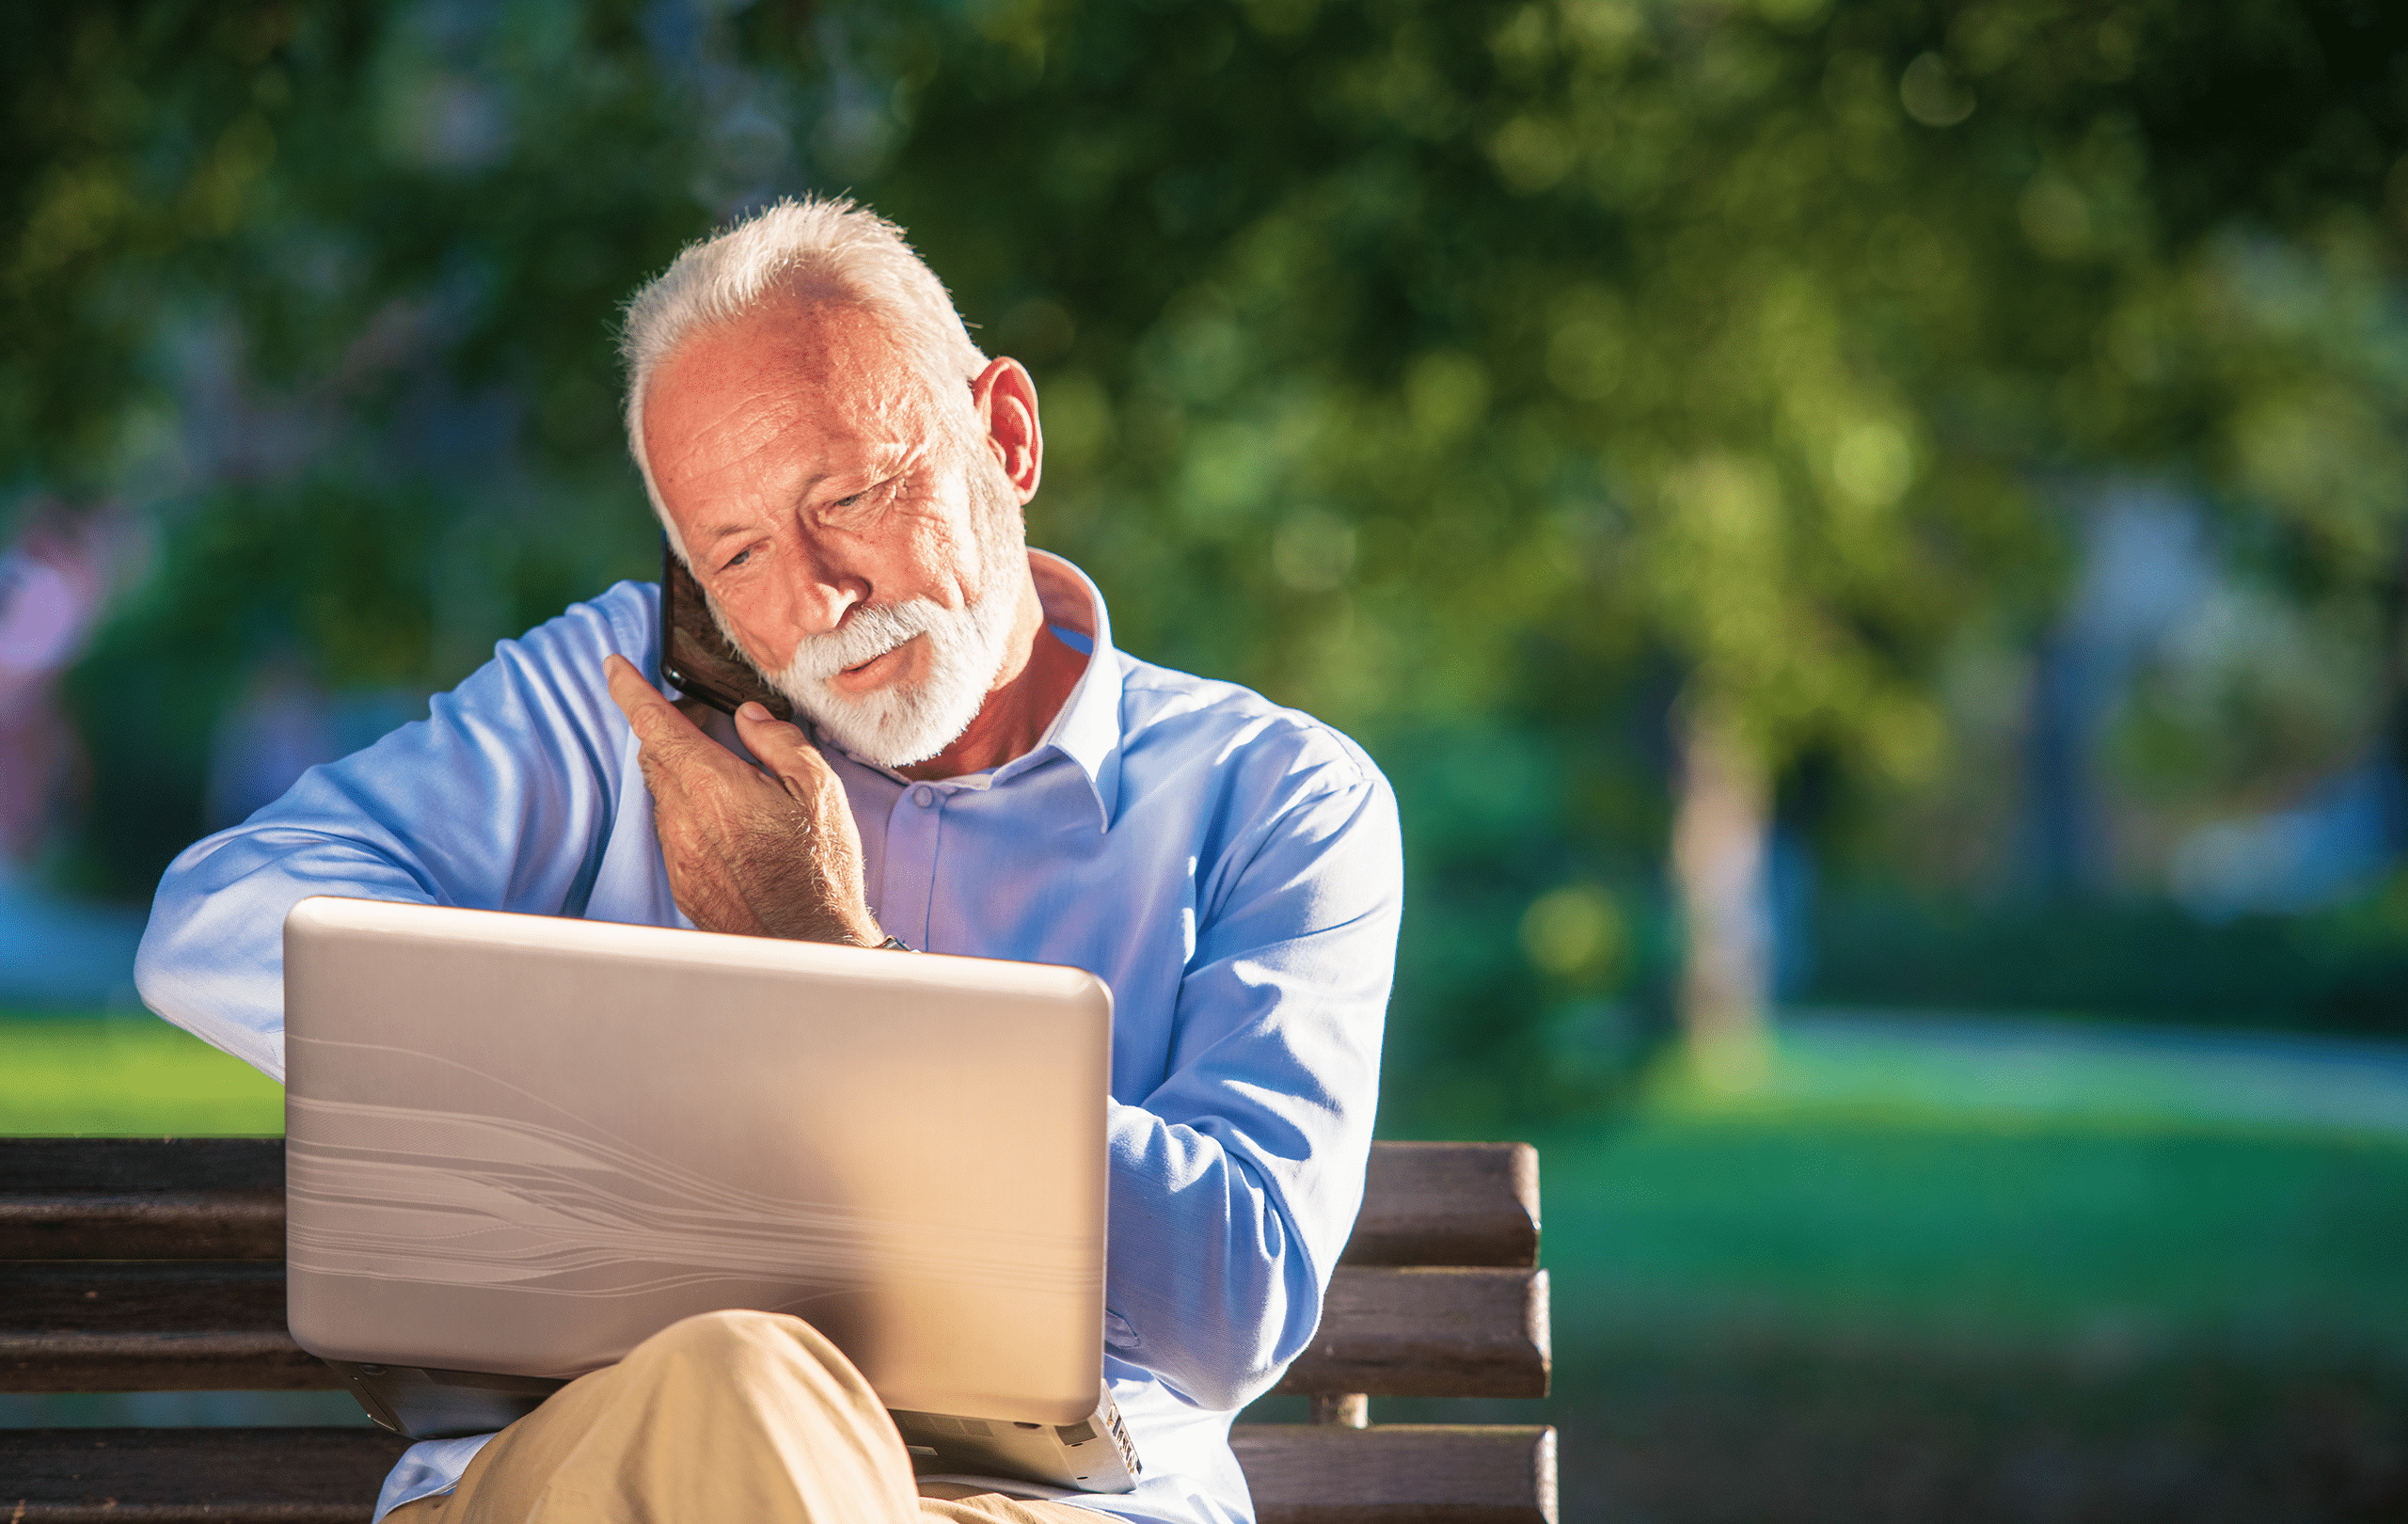 Older gentleman sitting on park bench, phoning and having laptop on his knees